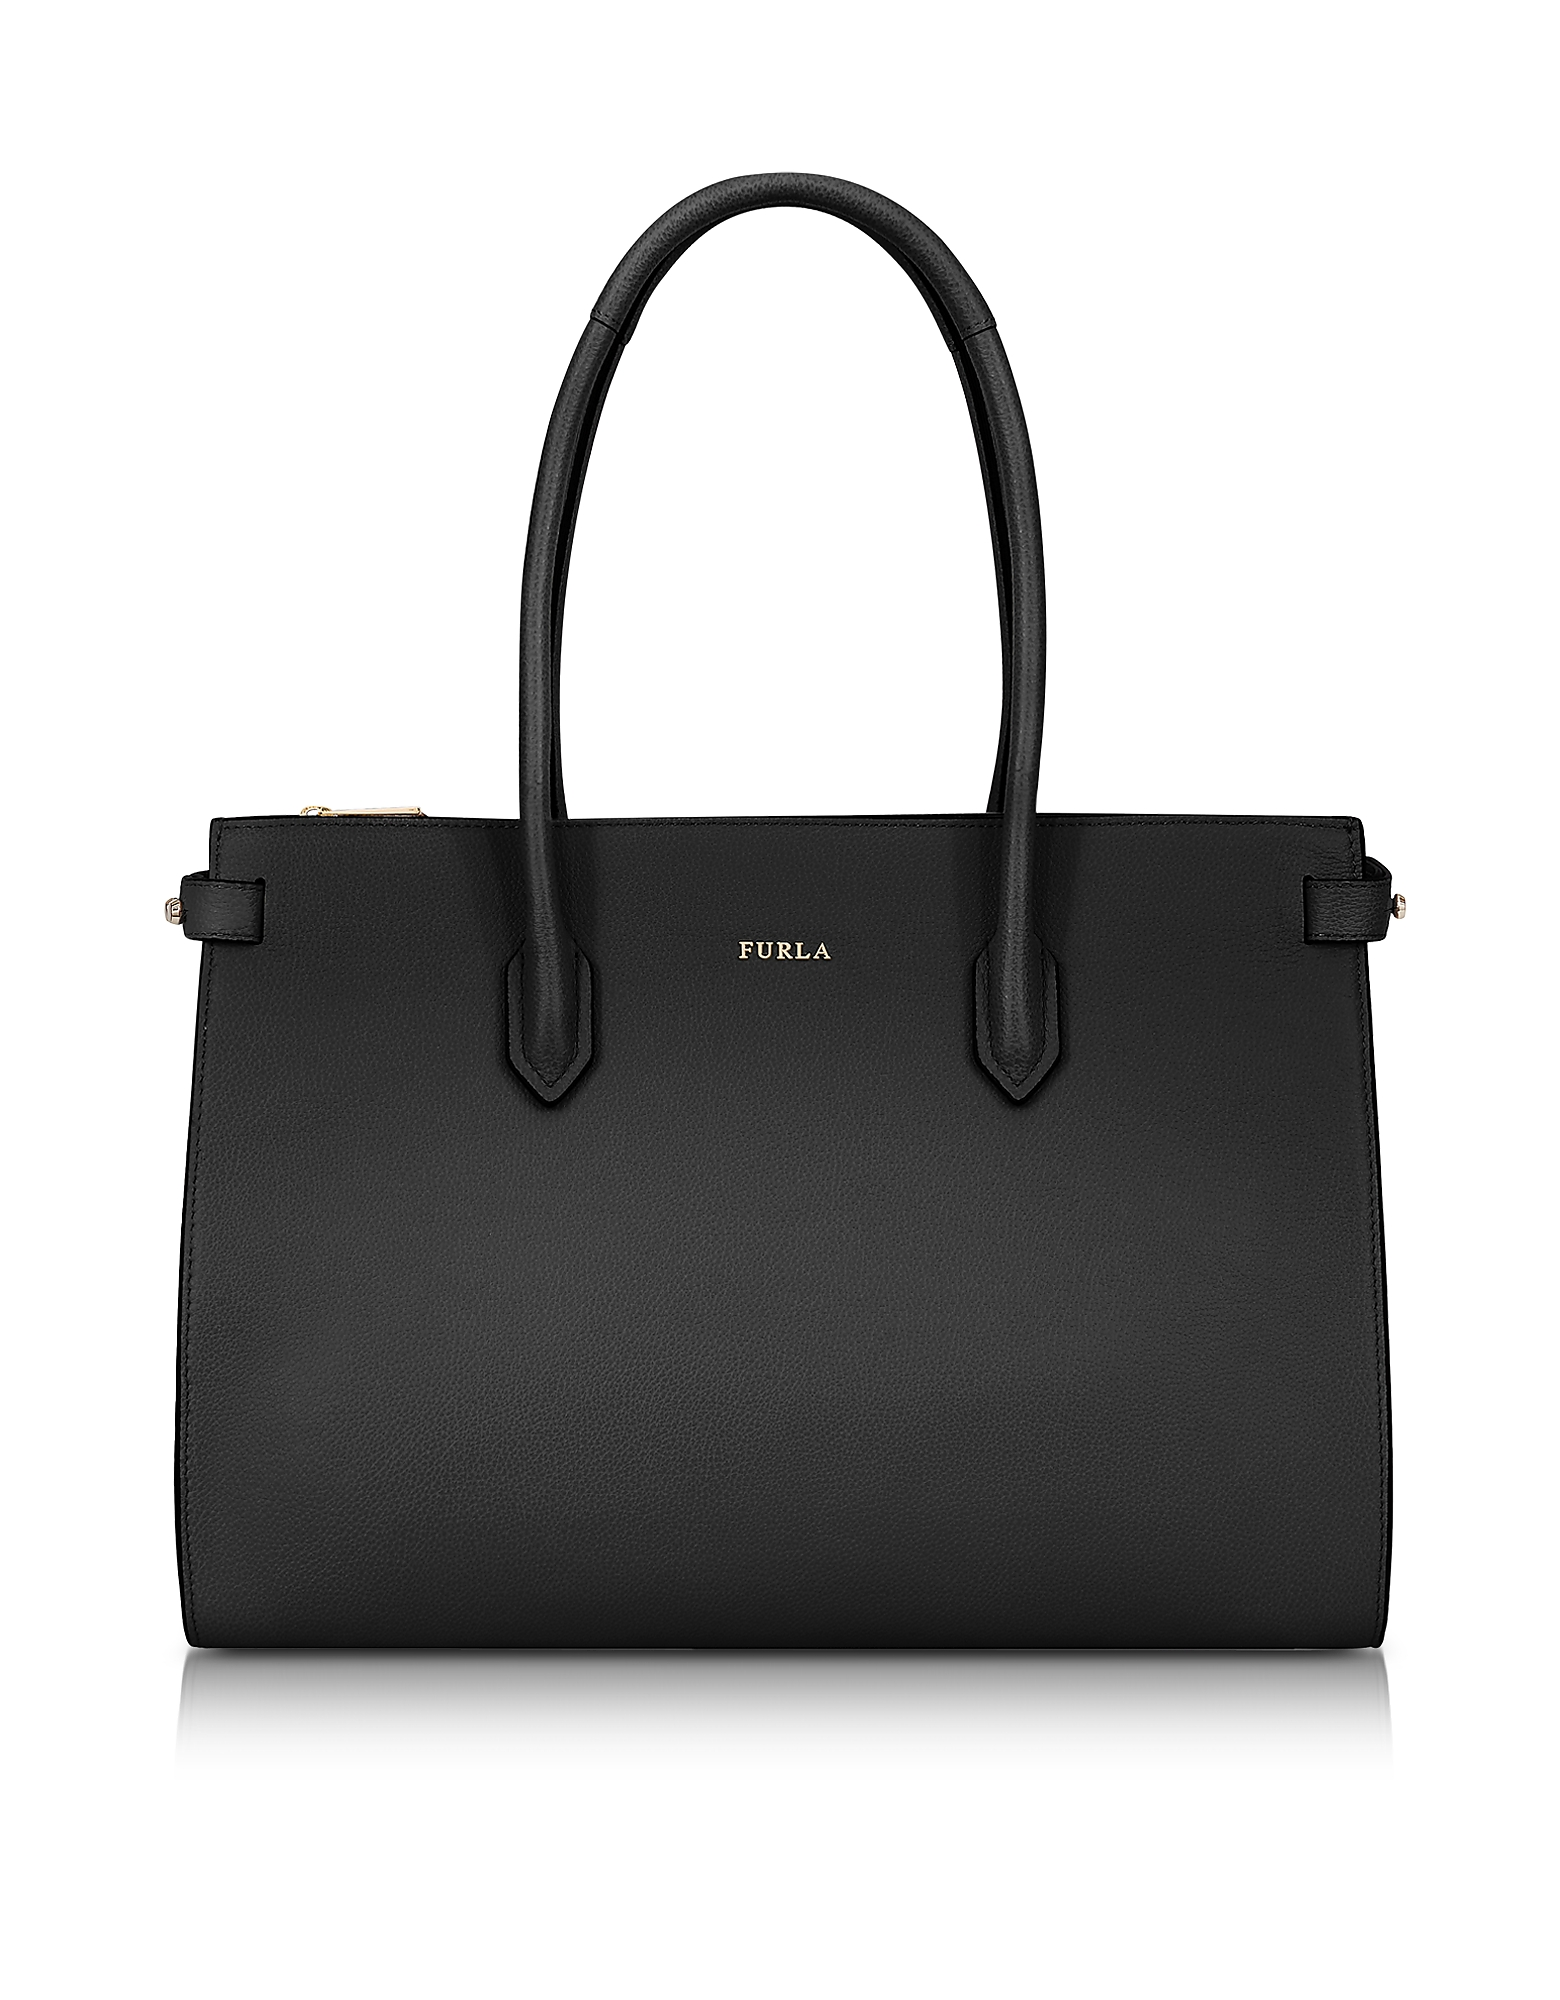 Furla Handbags, Onyx Leather Pin Medium E/W Tote Bag